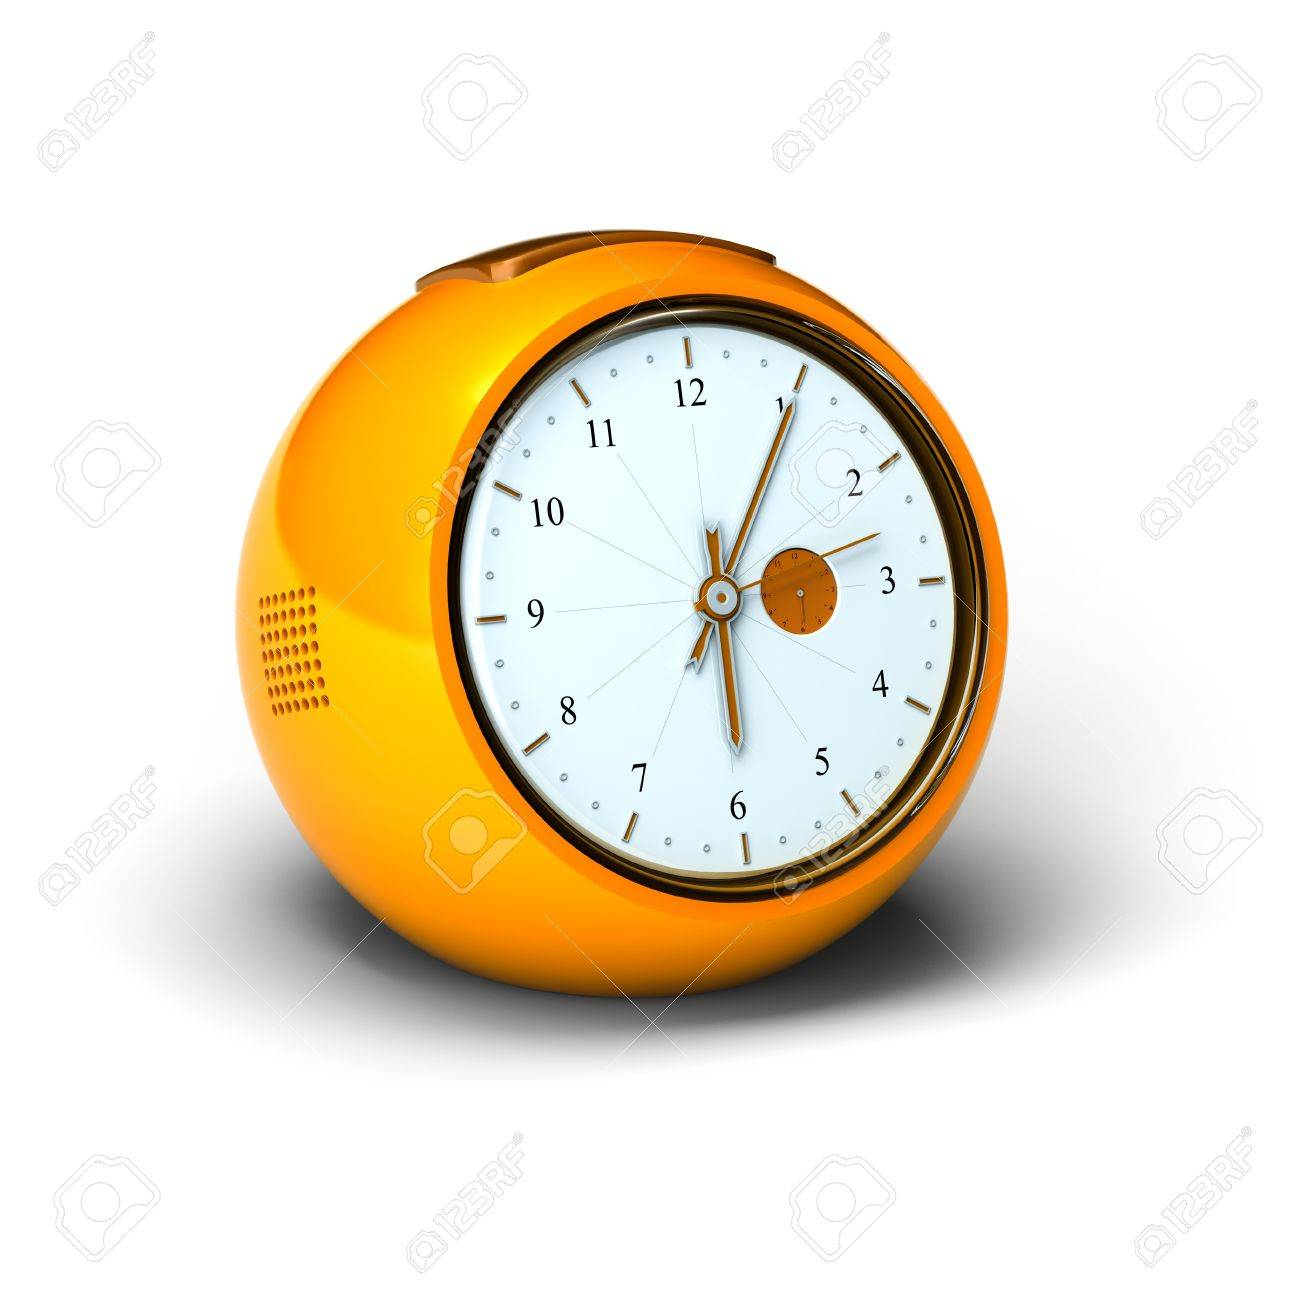 orange vintage alarm clock over a white background stock photo